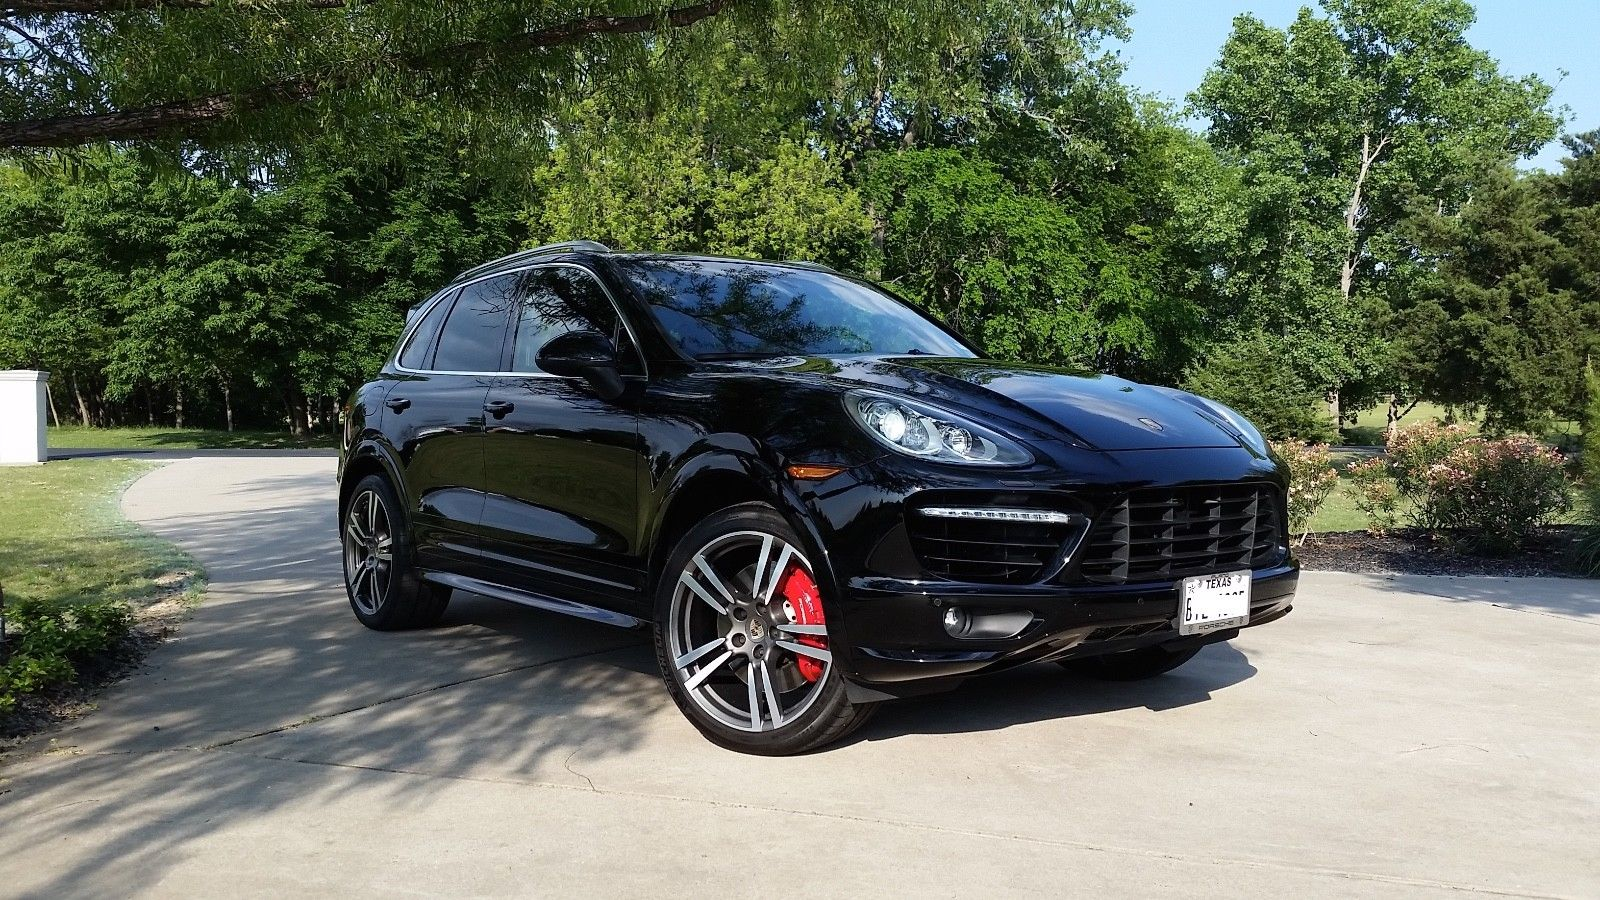 2012 Porsche Cayenne Turbo 2012 Porsche Cayenne Twin Turbo 81 875 Miles Black Suv 4 8l 8cyl 2017 2018 Is In Stock And For Sale 24carshop Com